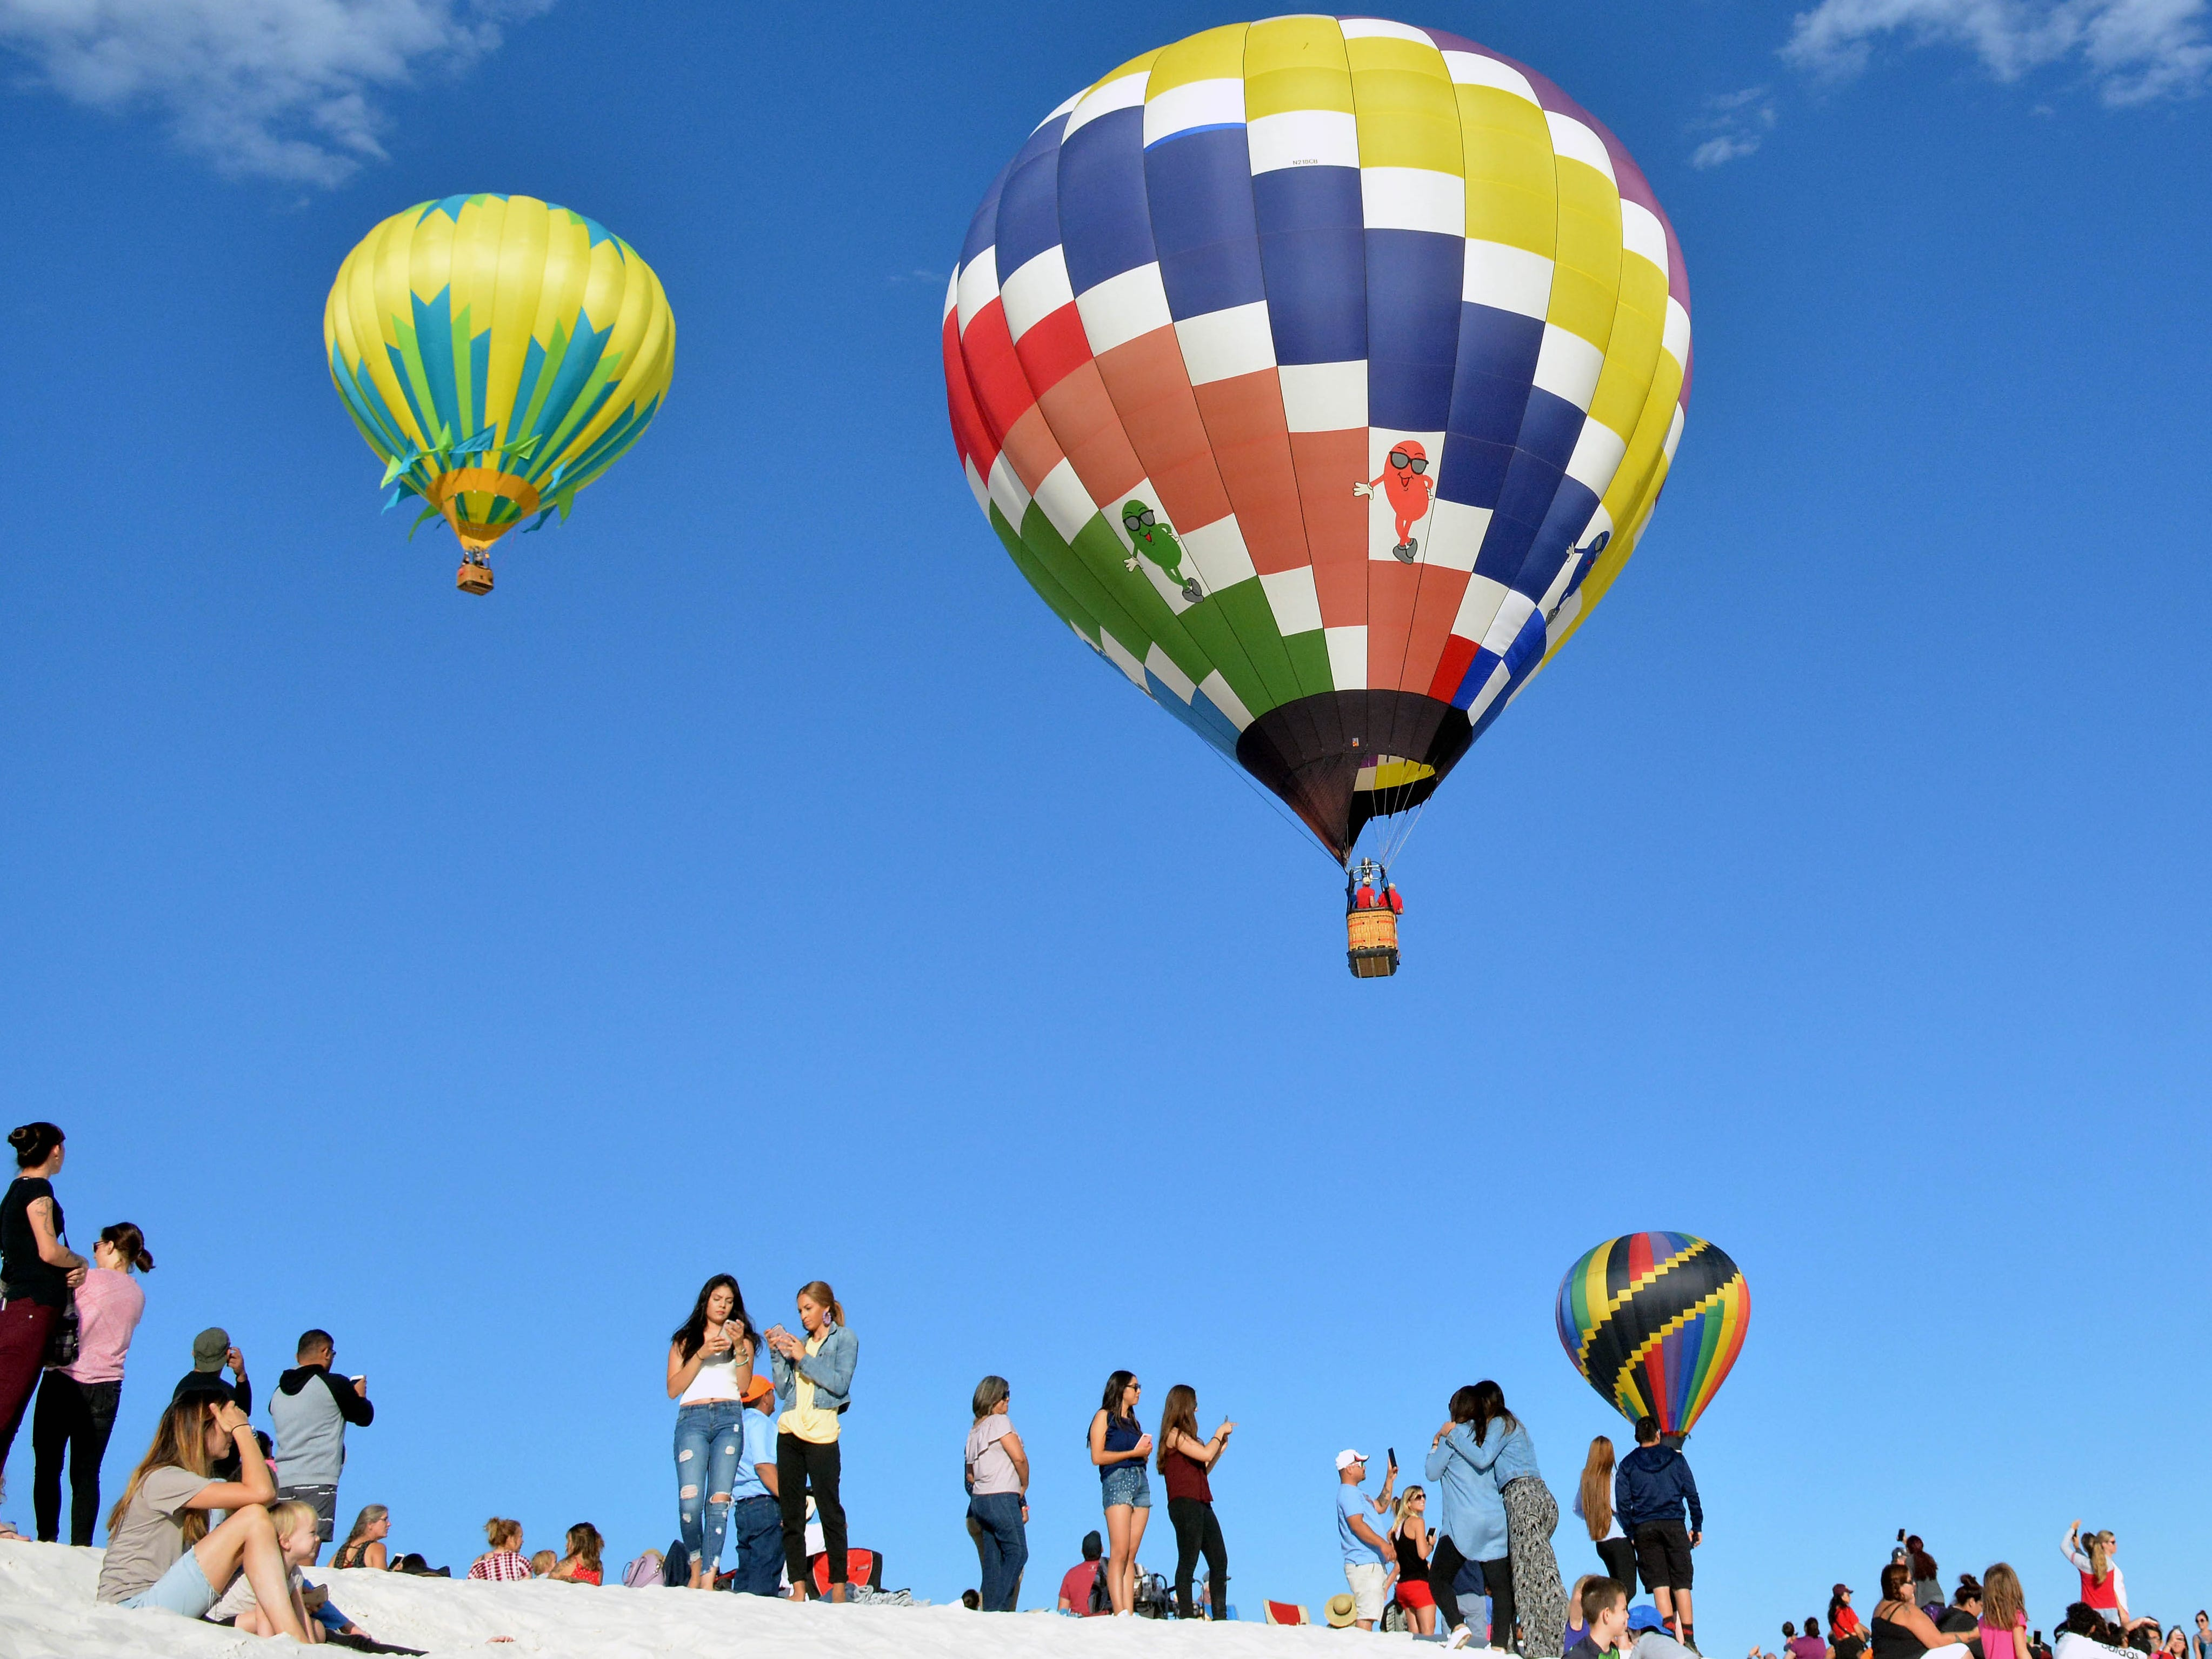 Balloons take flight over the dunes Saturday, Sept. 15, 2018 at the White Sands Balloon Invitational.